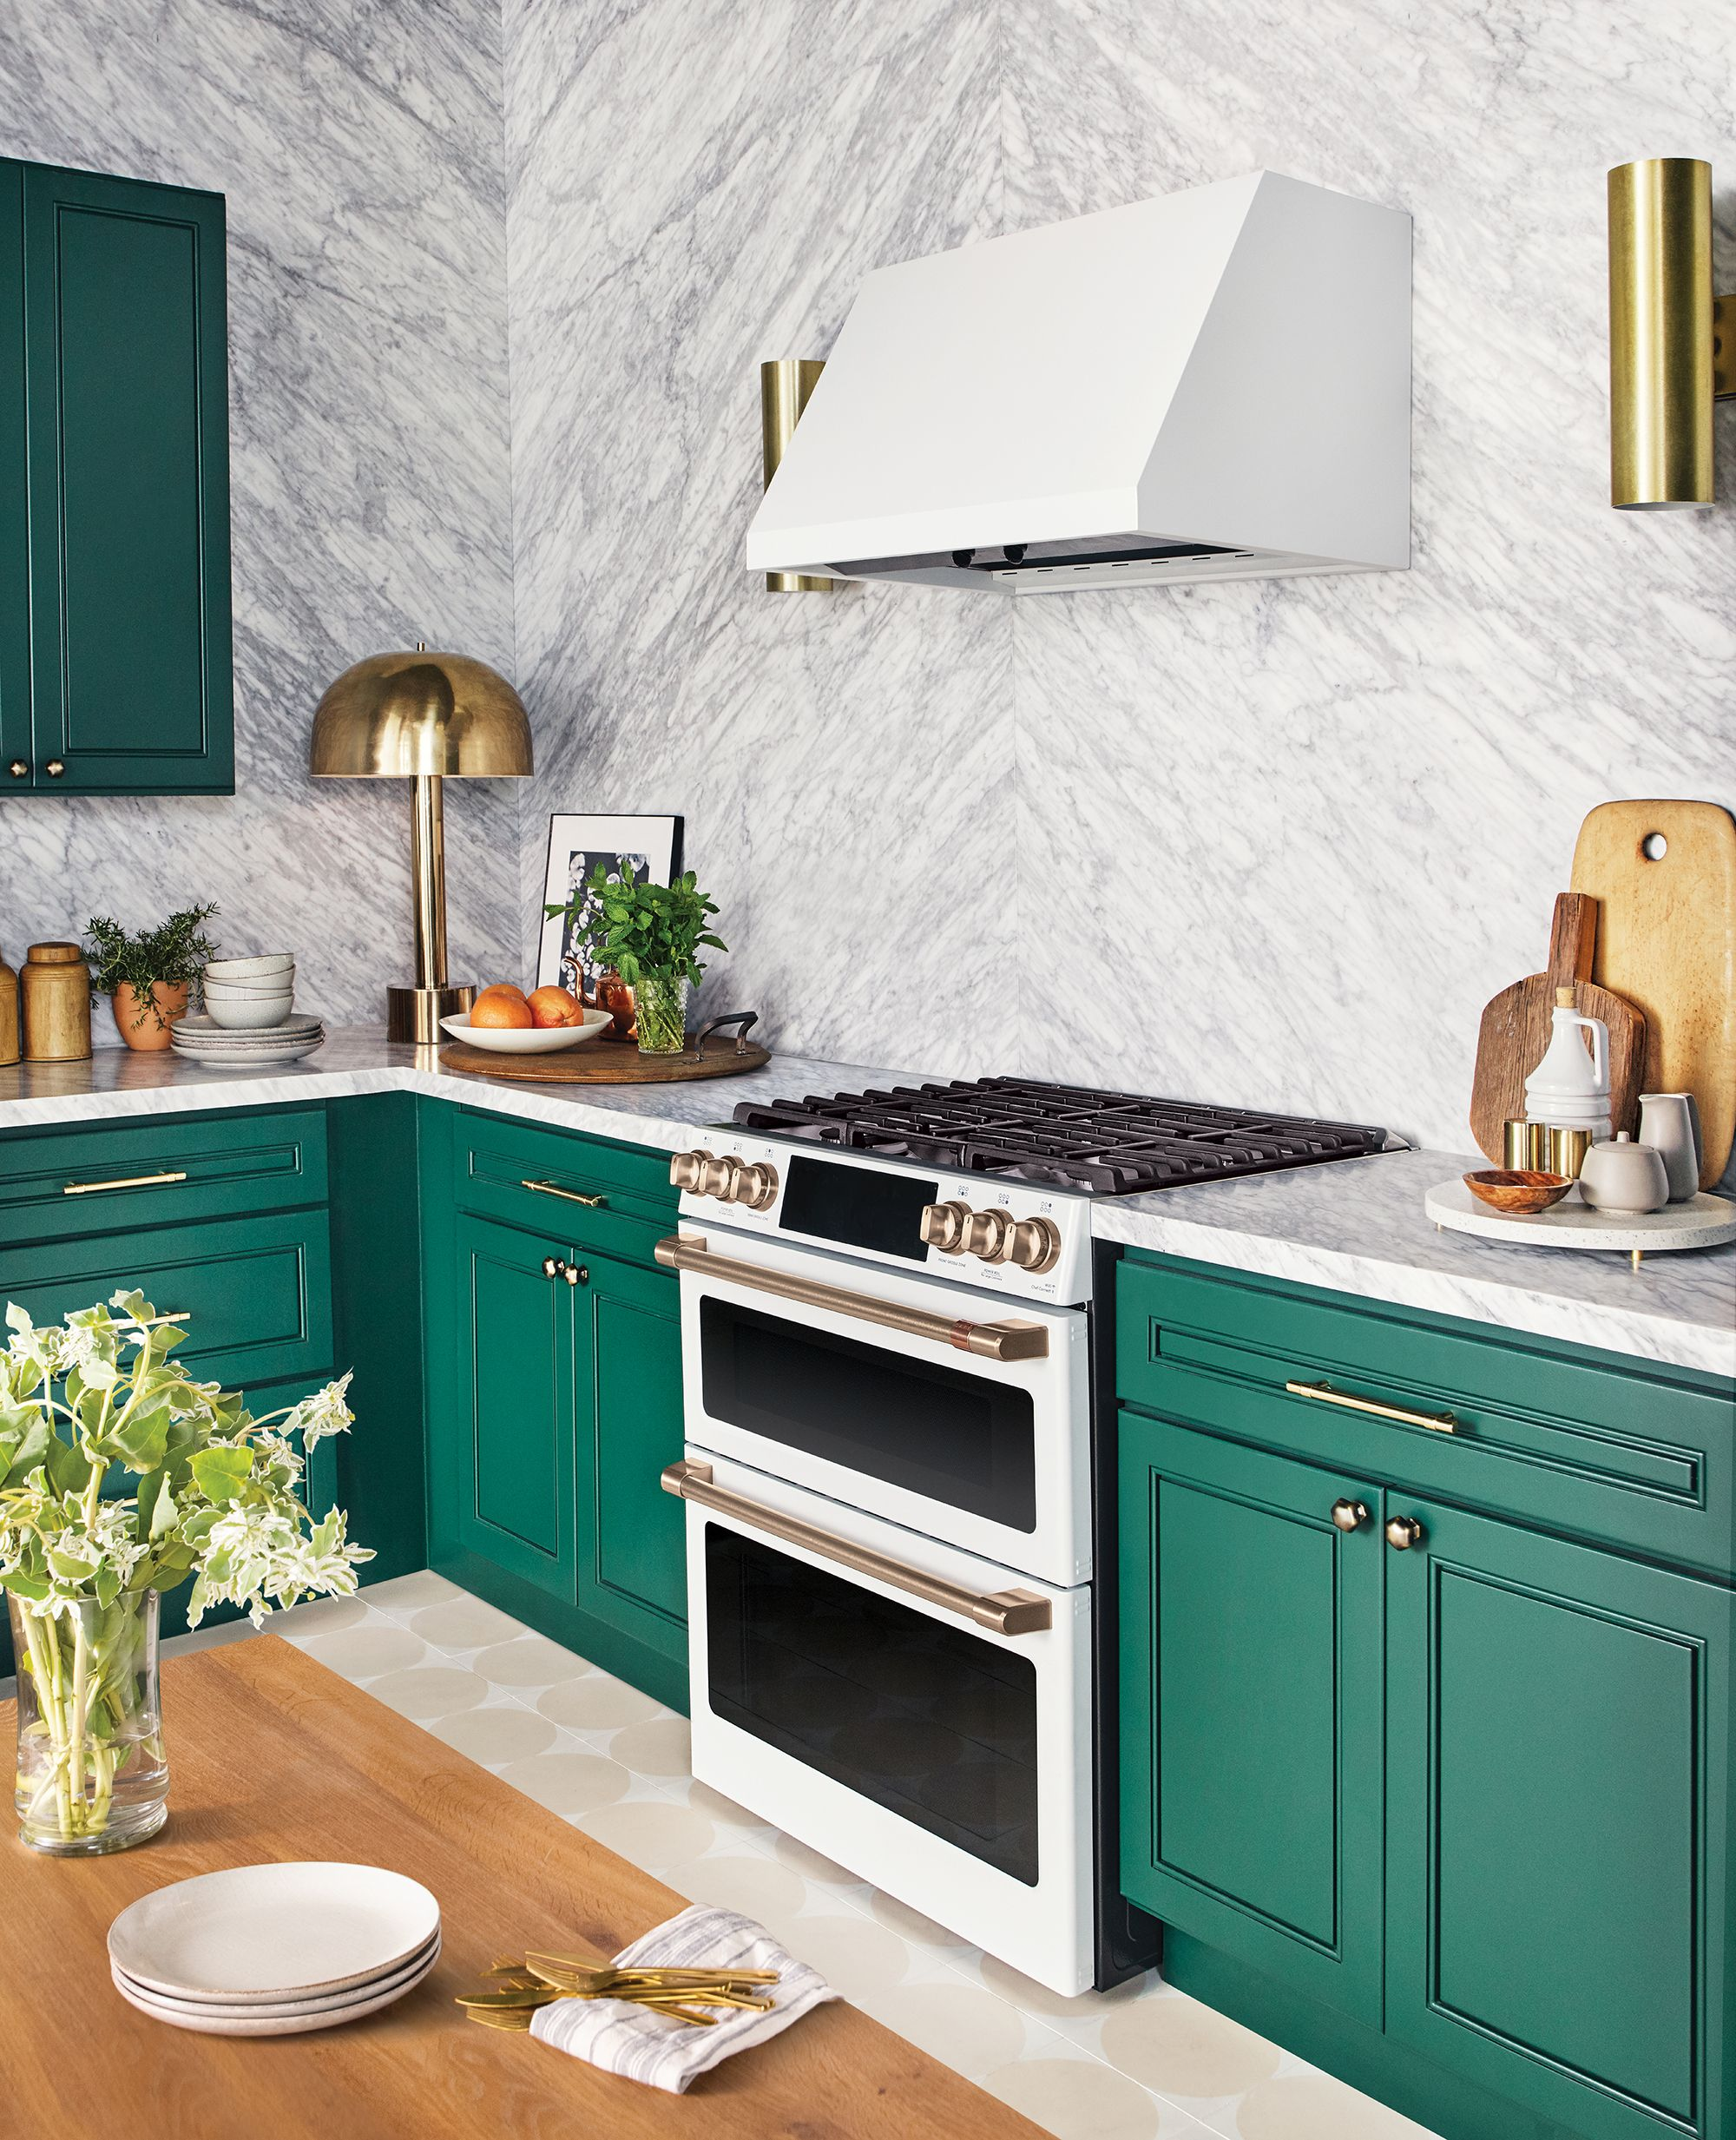 stylish cooking that performs kitchen remodel kitchen trends kitchen design on kitchen ideas emerald green id=75626